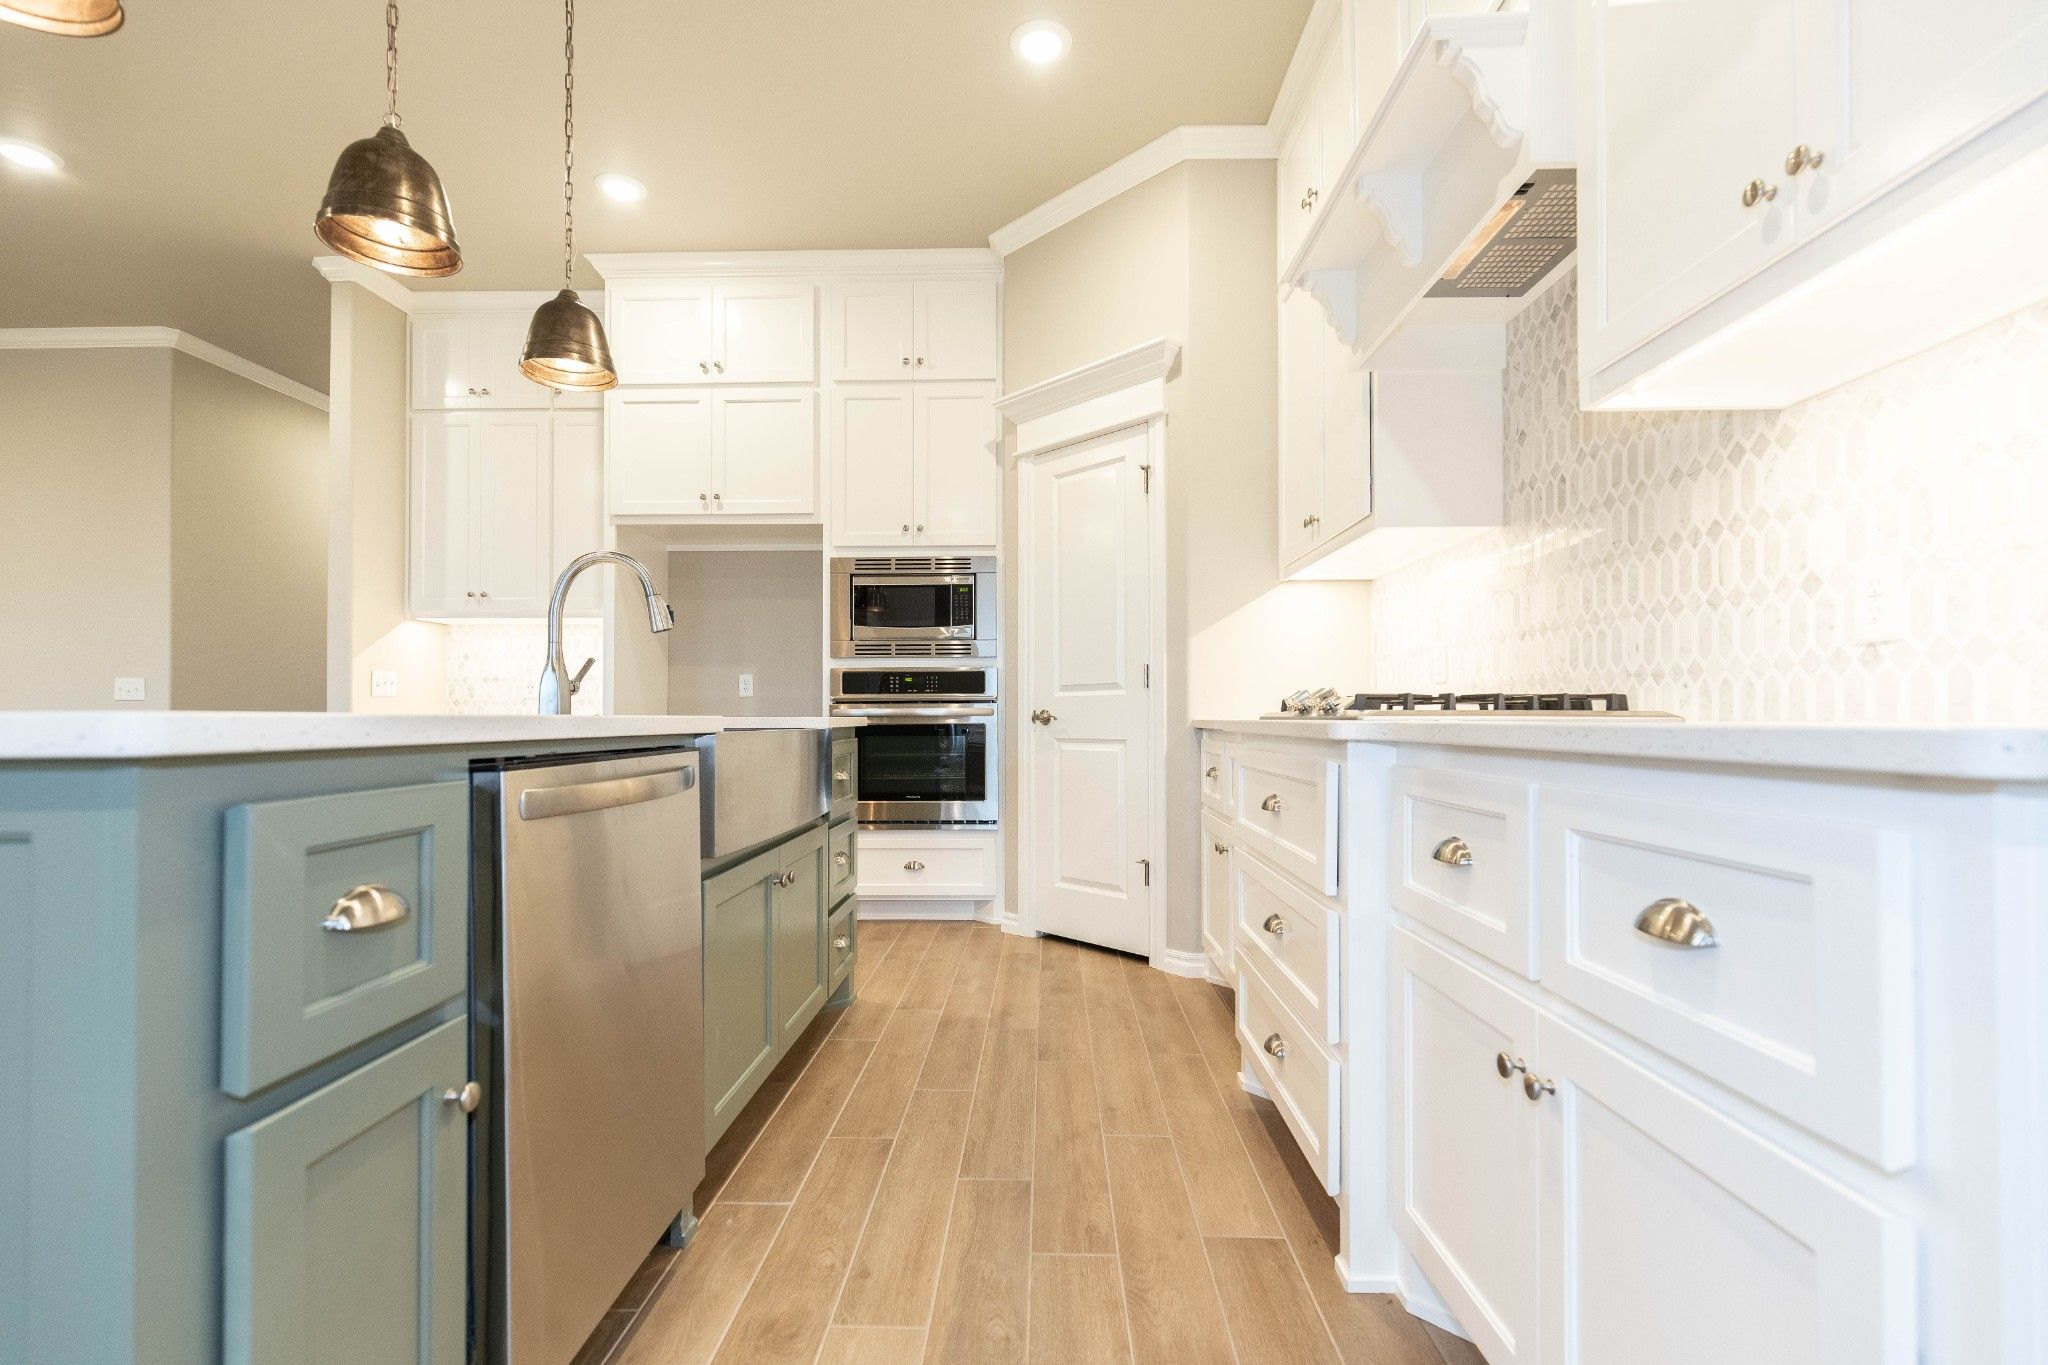 Kitchen featured in the Hazel Plus By Homes By Taber in Oklahoma City, OK